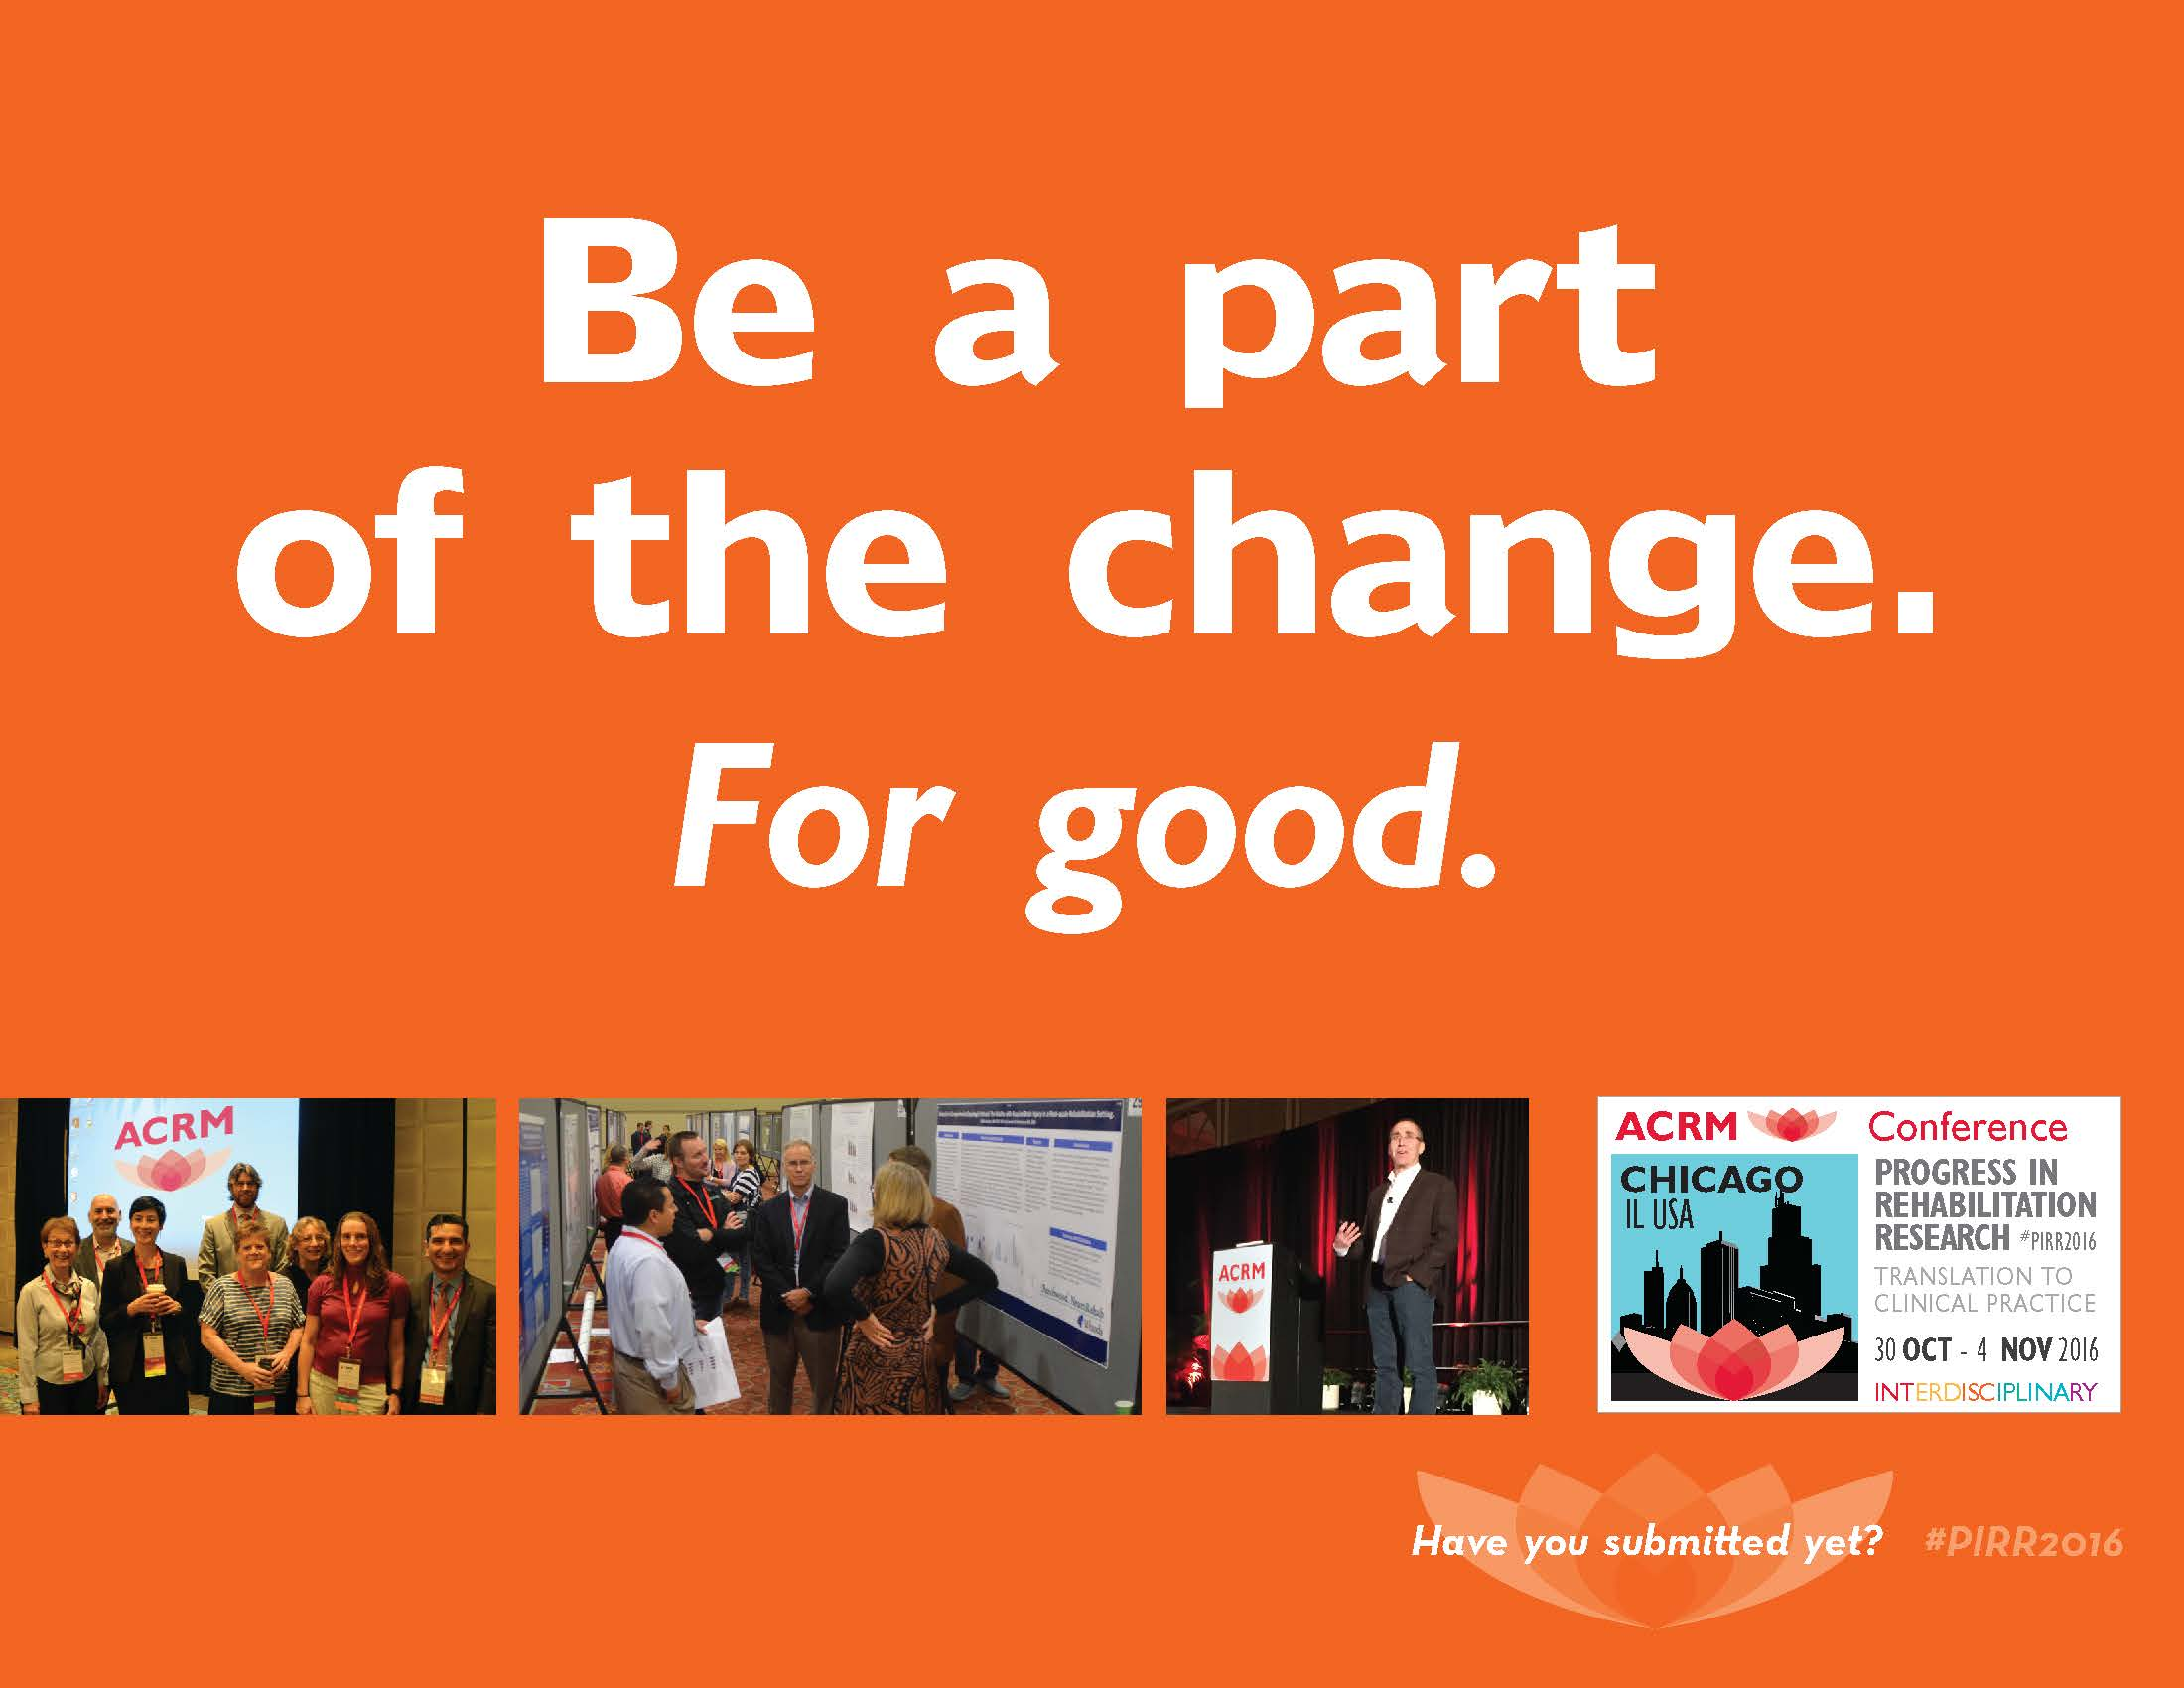 Be a part of the change. For good